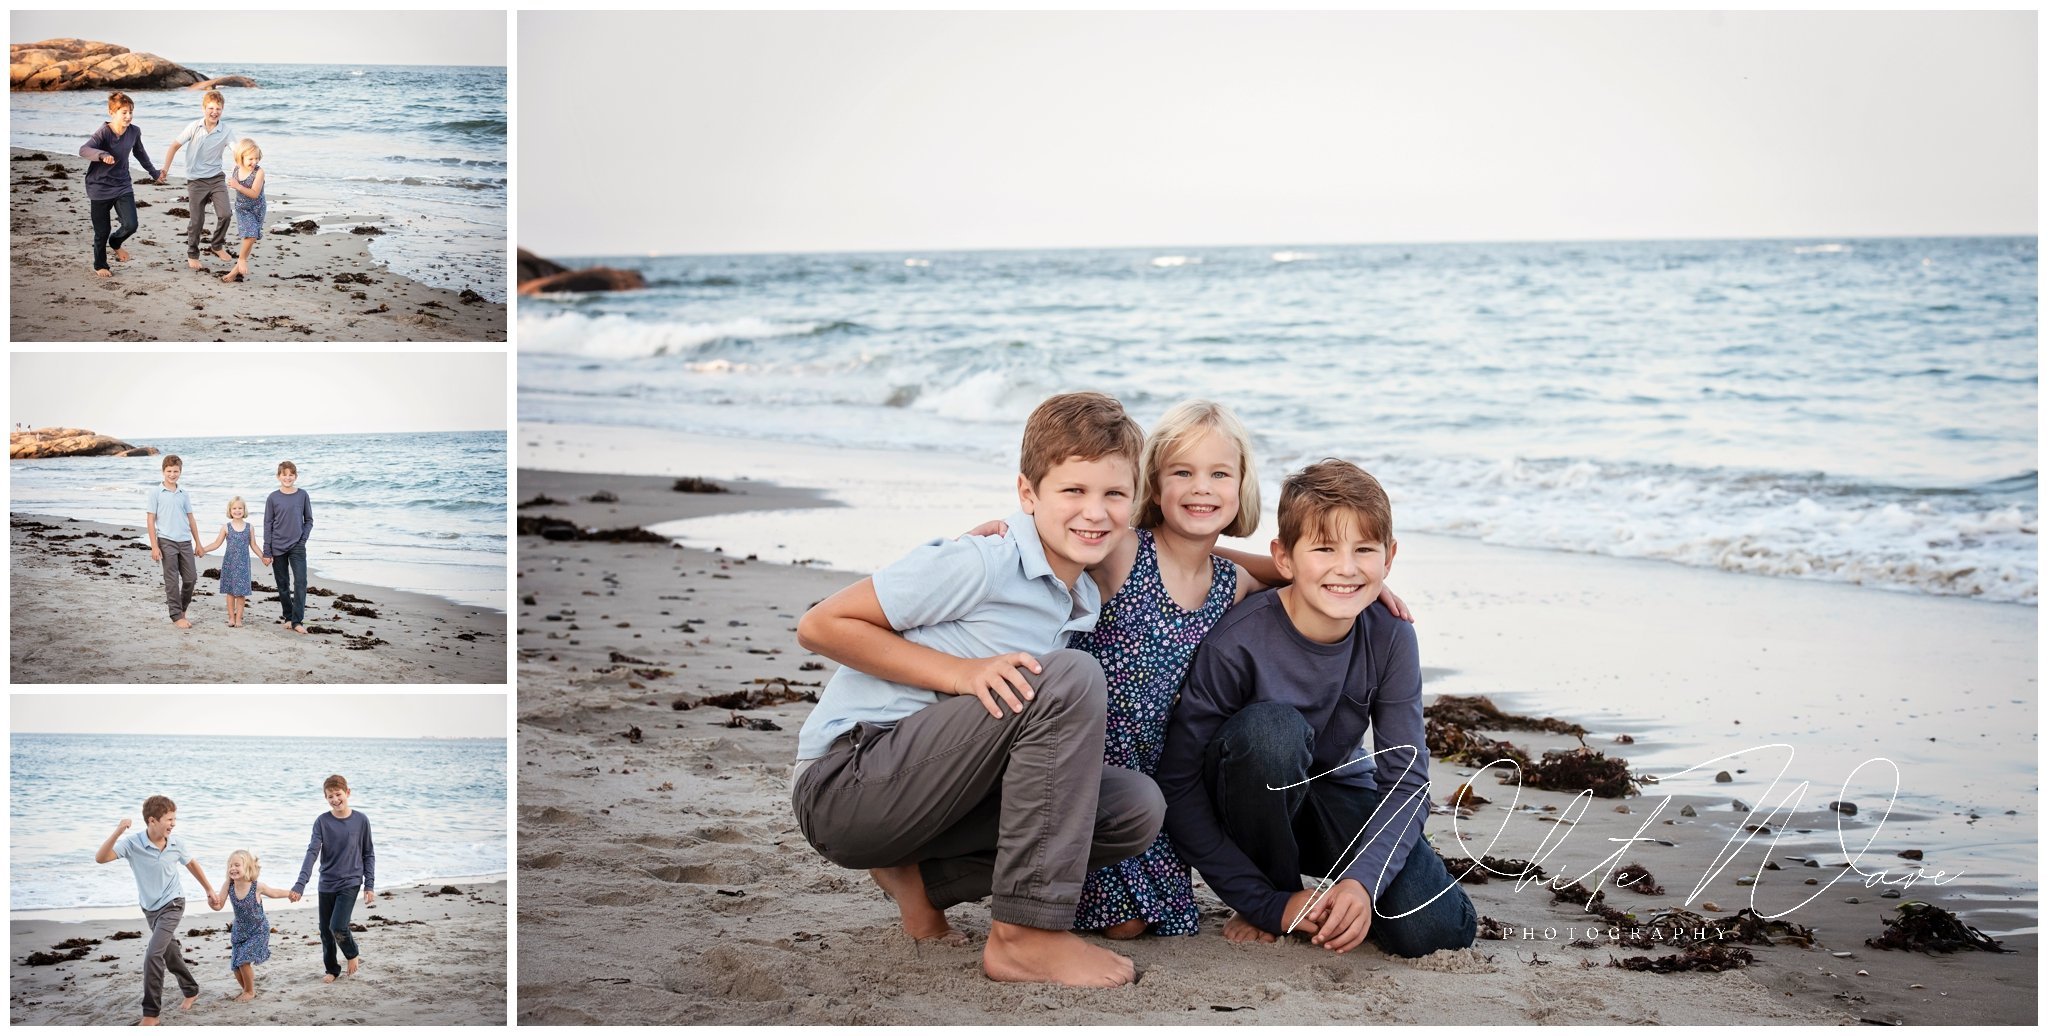 Dover family photographer Jennie Bishop shares why it's important to print your children's photos